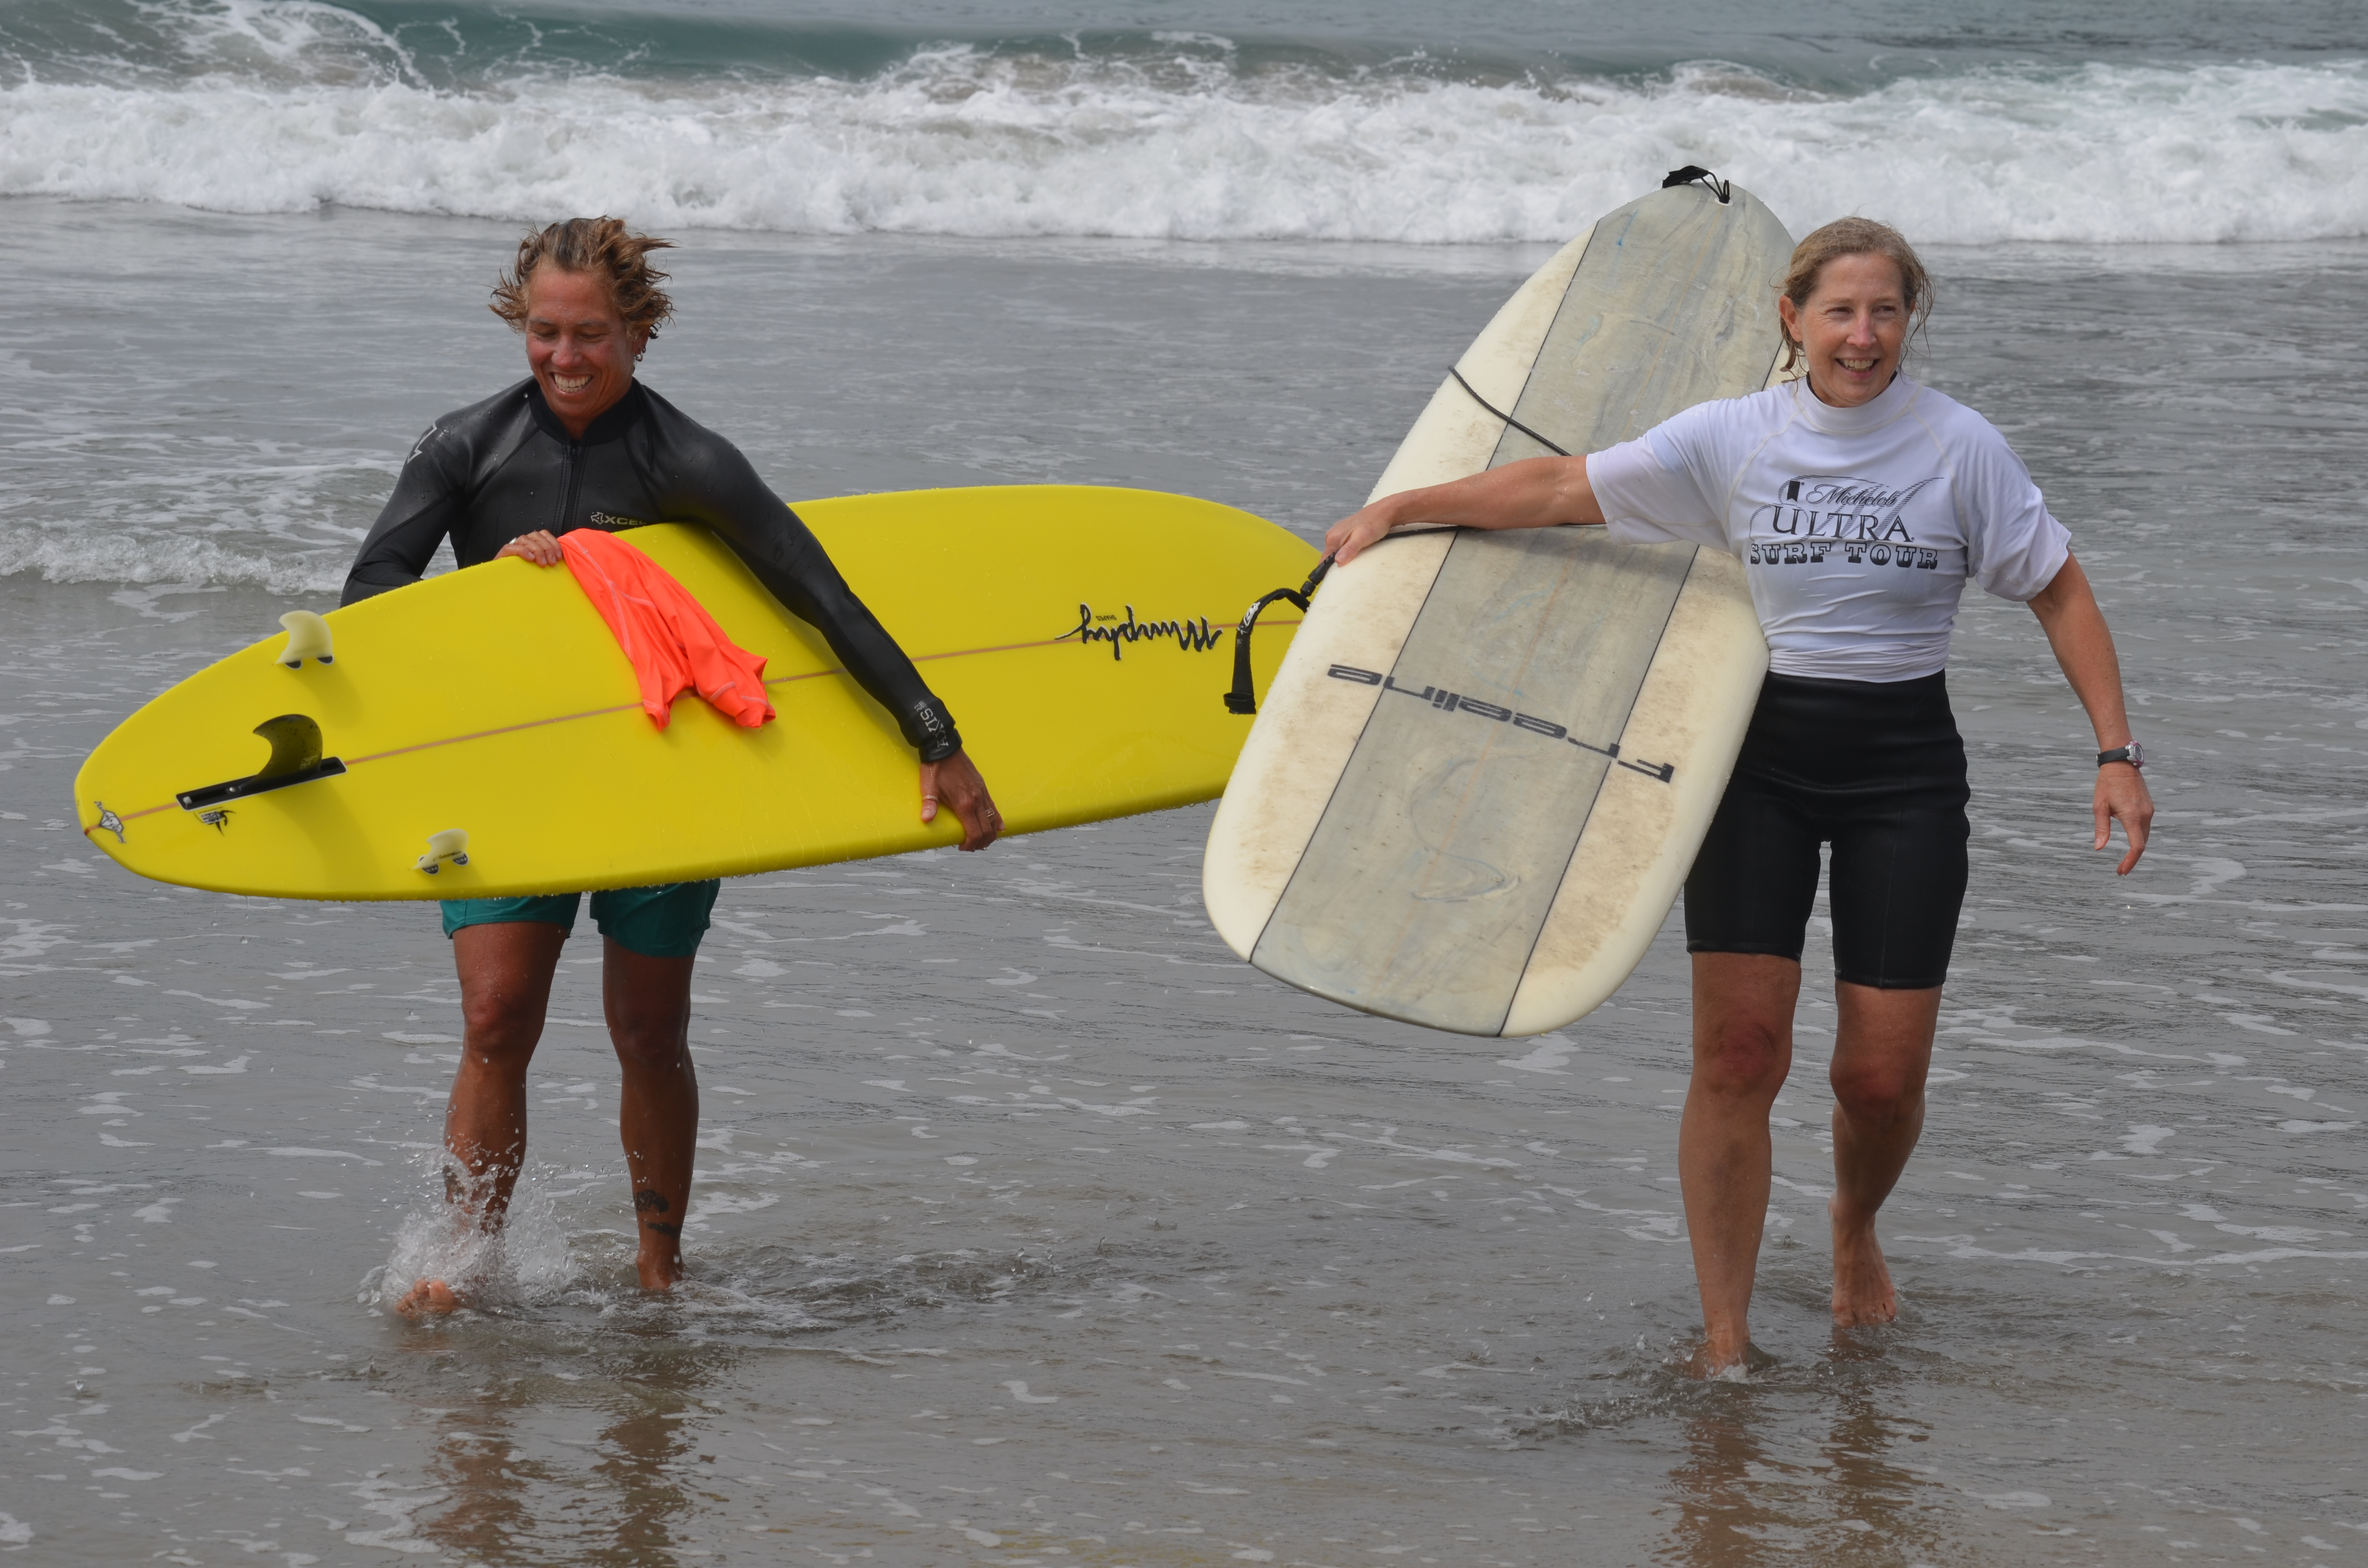 Lisa Carulli, left, and Karen Cochran emerge from the ocean following their heat at the Oceanside Longboard Surfing Club's annual surf competition on Sunday. Photo by Tony Cagala